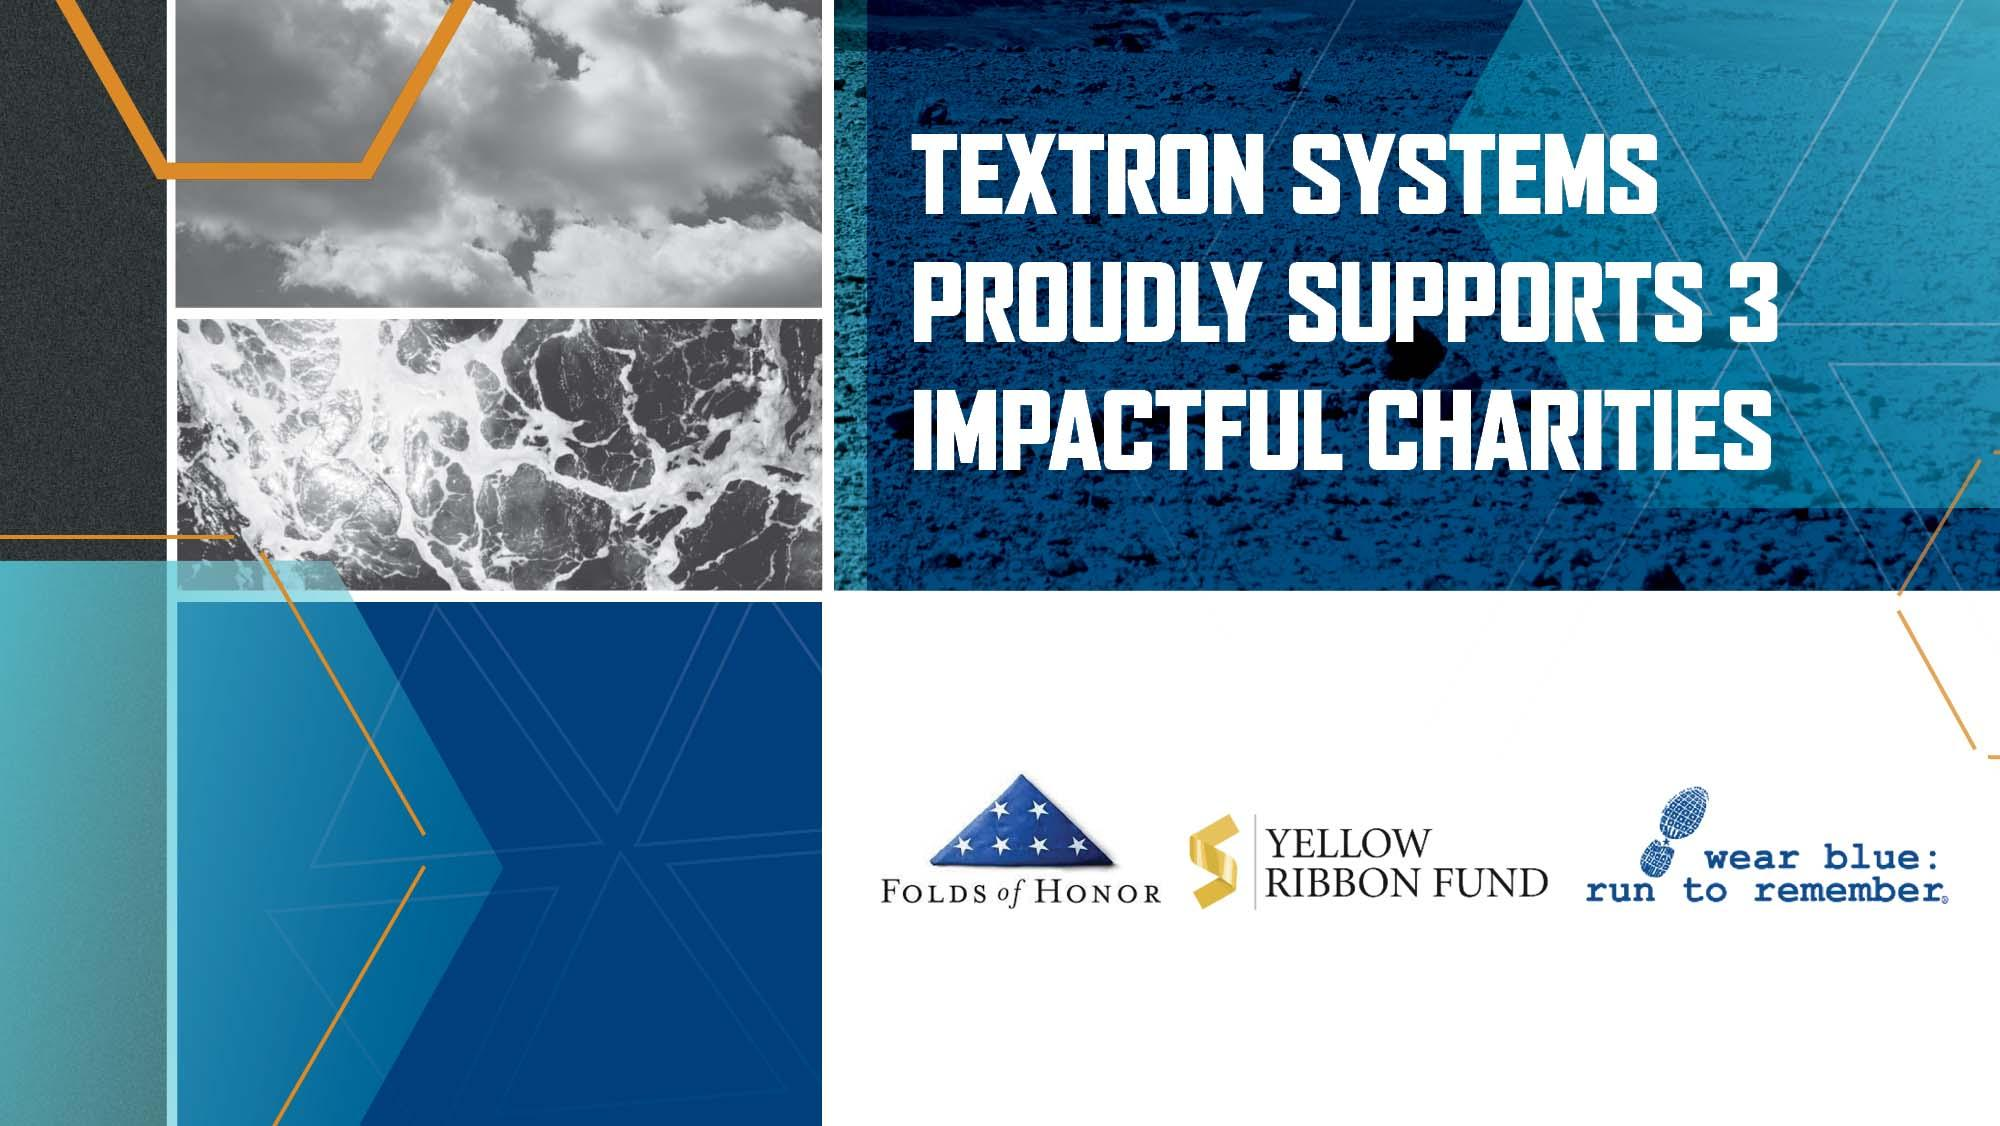 Textron Systems Proudly Supports charities feature image